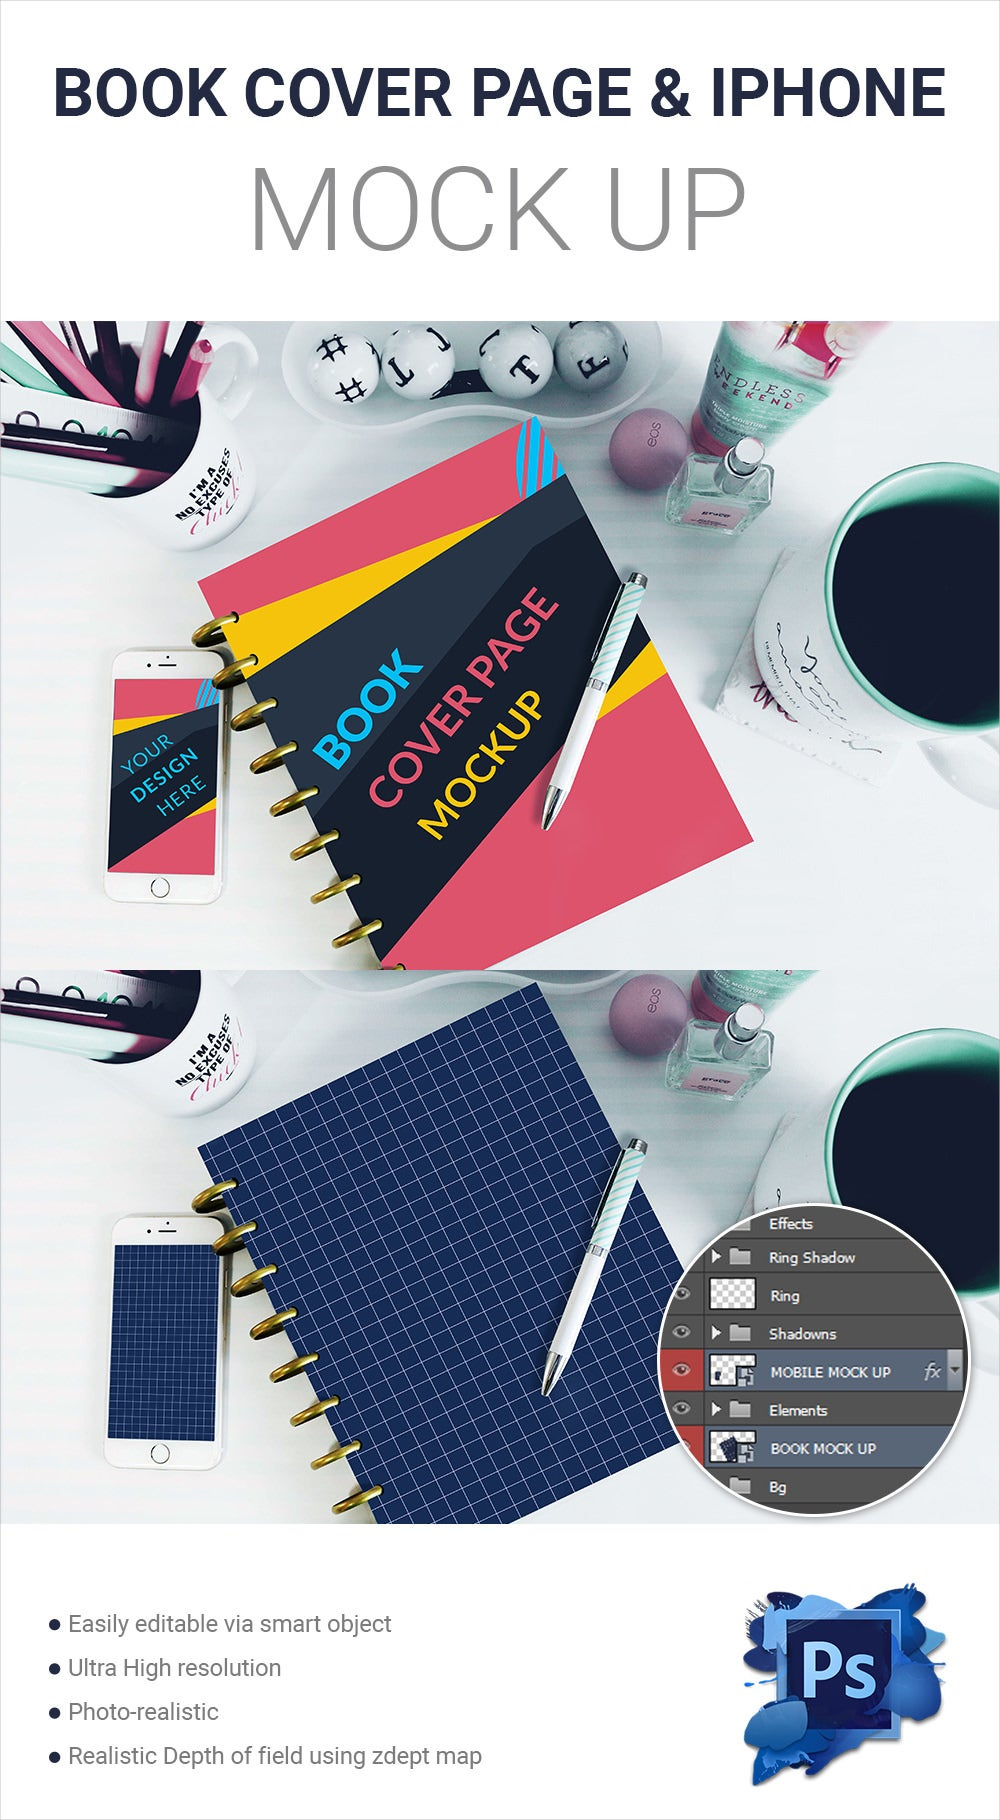 Book Cover Page U0026 IPhone Mockup Free Download  Free Report Cover Page Template